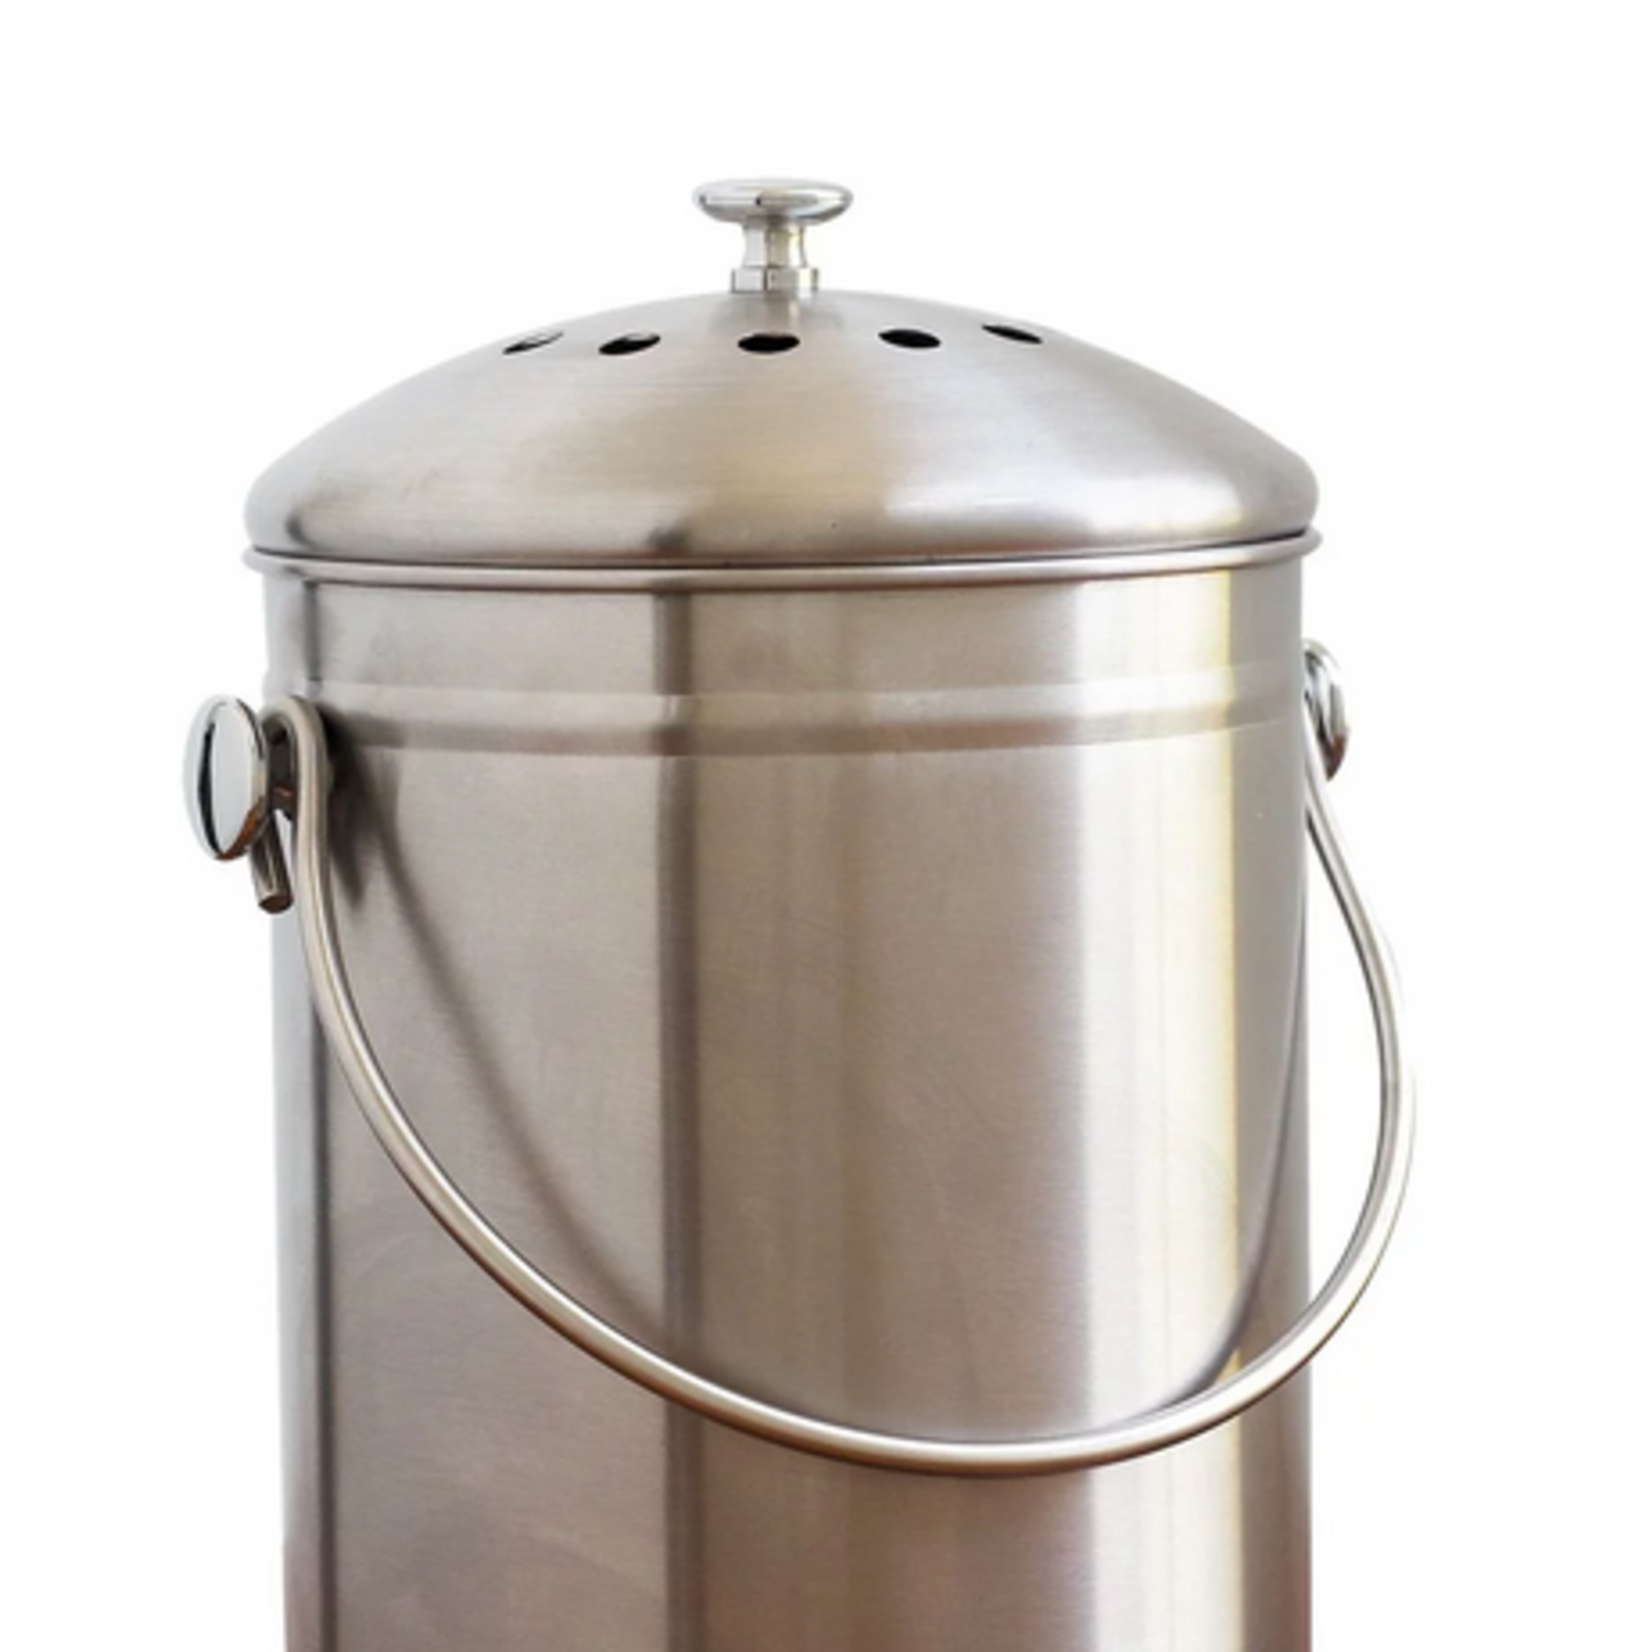 Compost Pail Stainless Steel, 1.3 gal